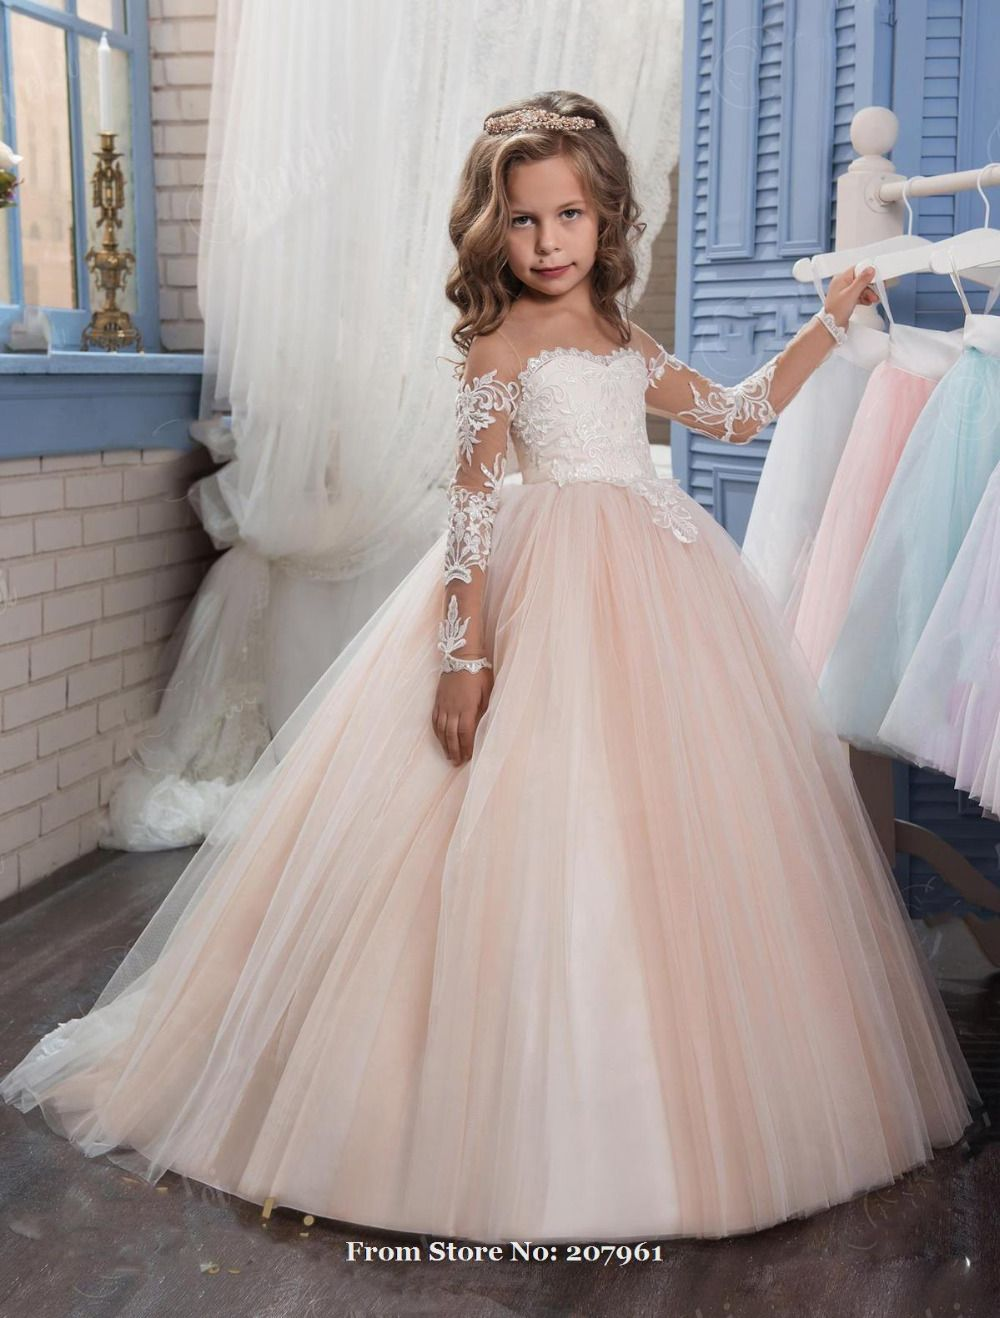 1be1b1c9f0 WF811Lovely Champagne Lady Girl Dresses Elegant Organza Lace Ball Gown  Girls First Communion Dresses Long Sleeve